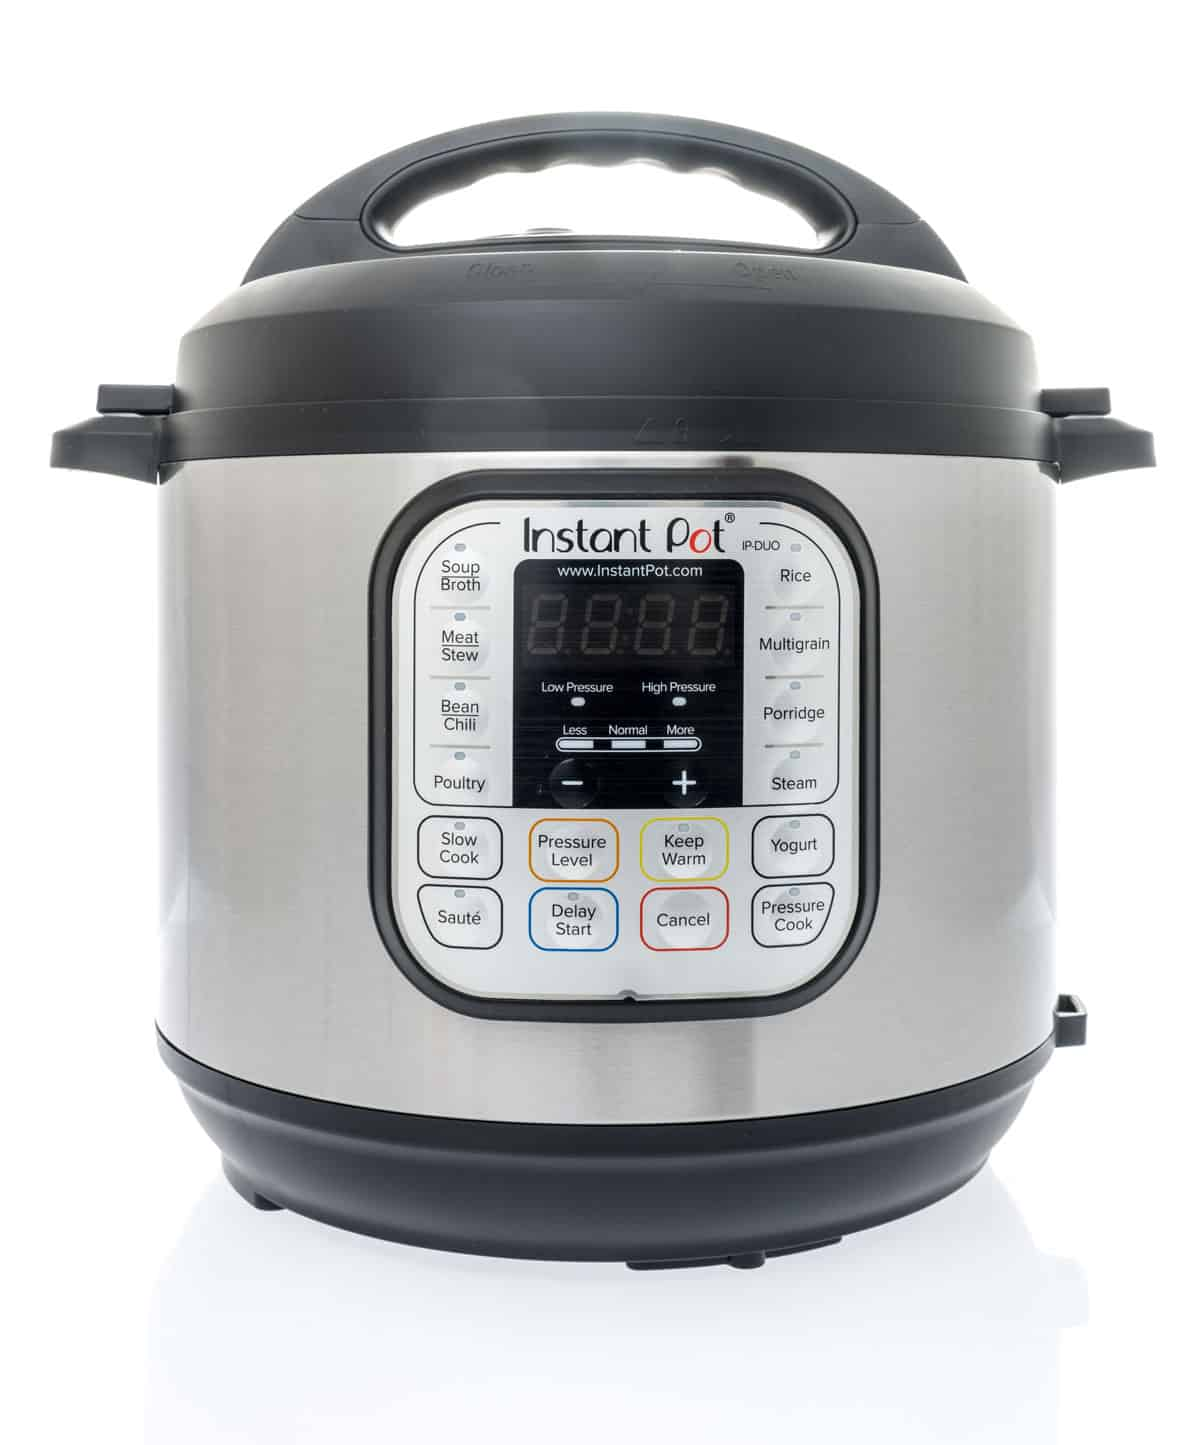 Instant Pot electric pressure cooker.